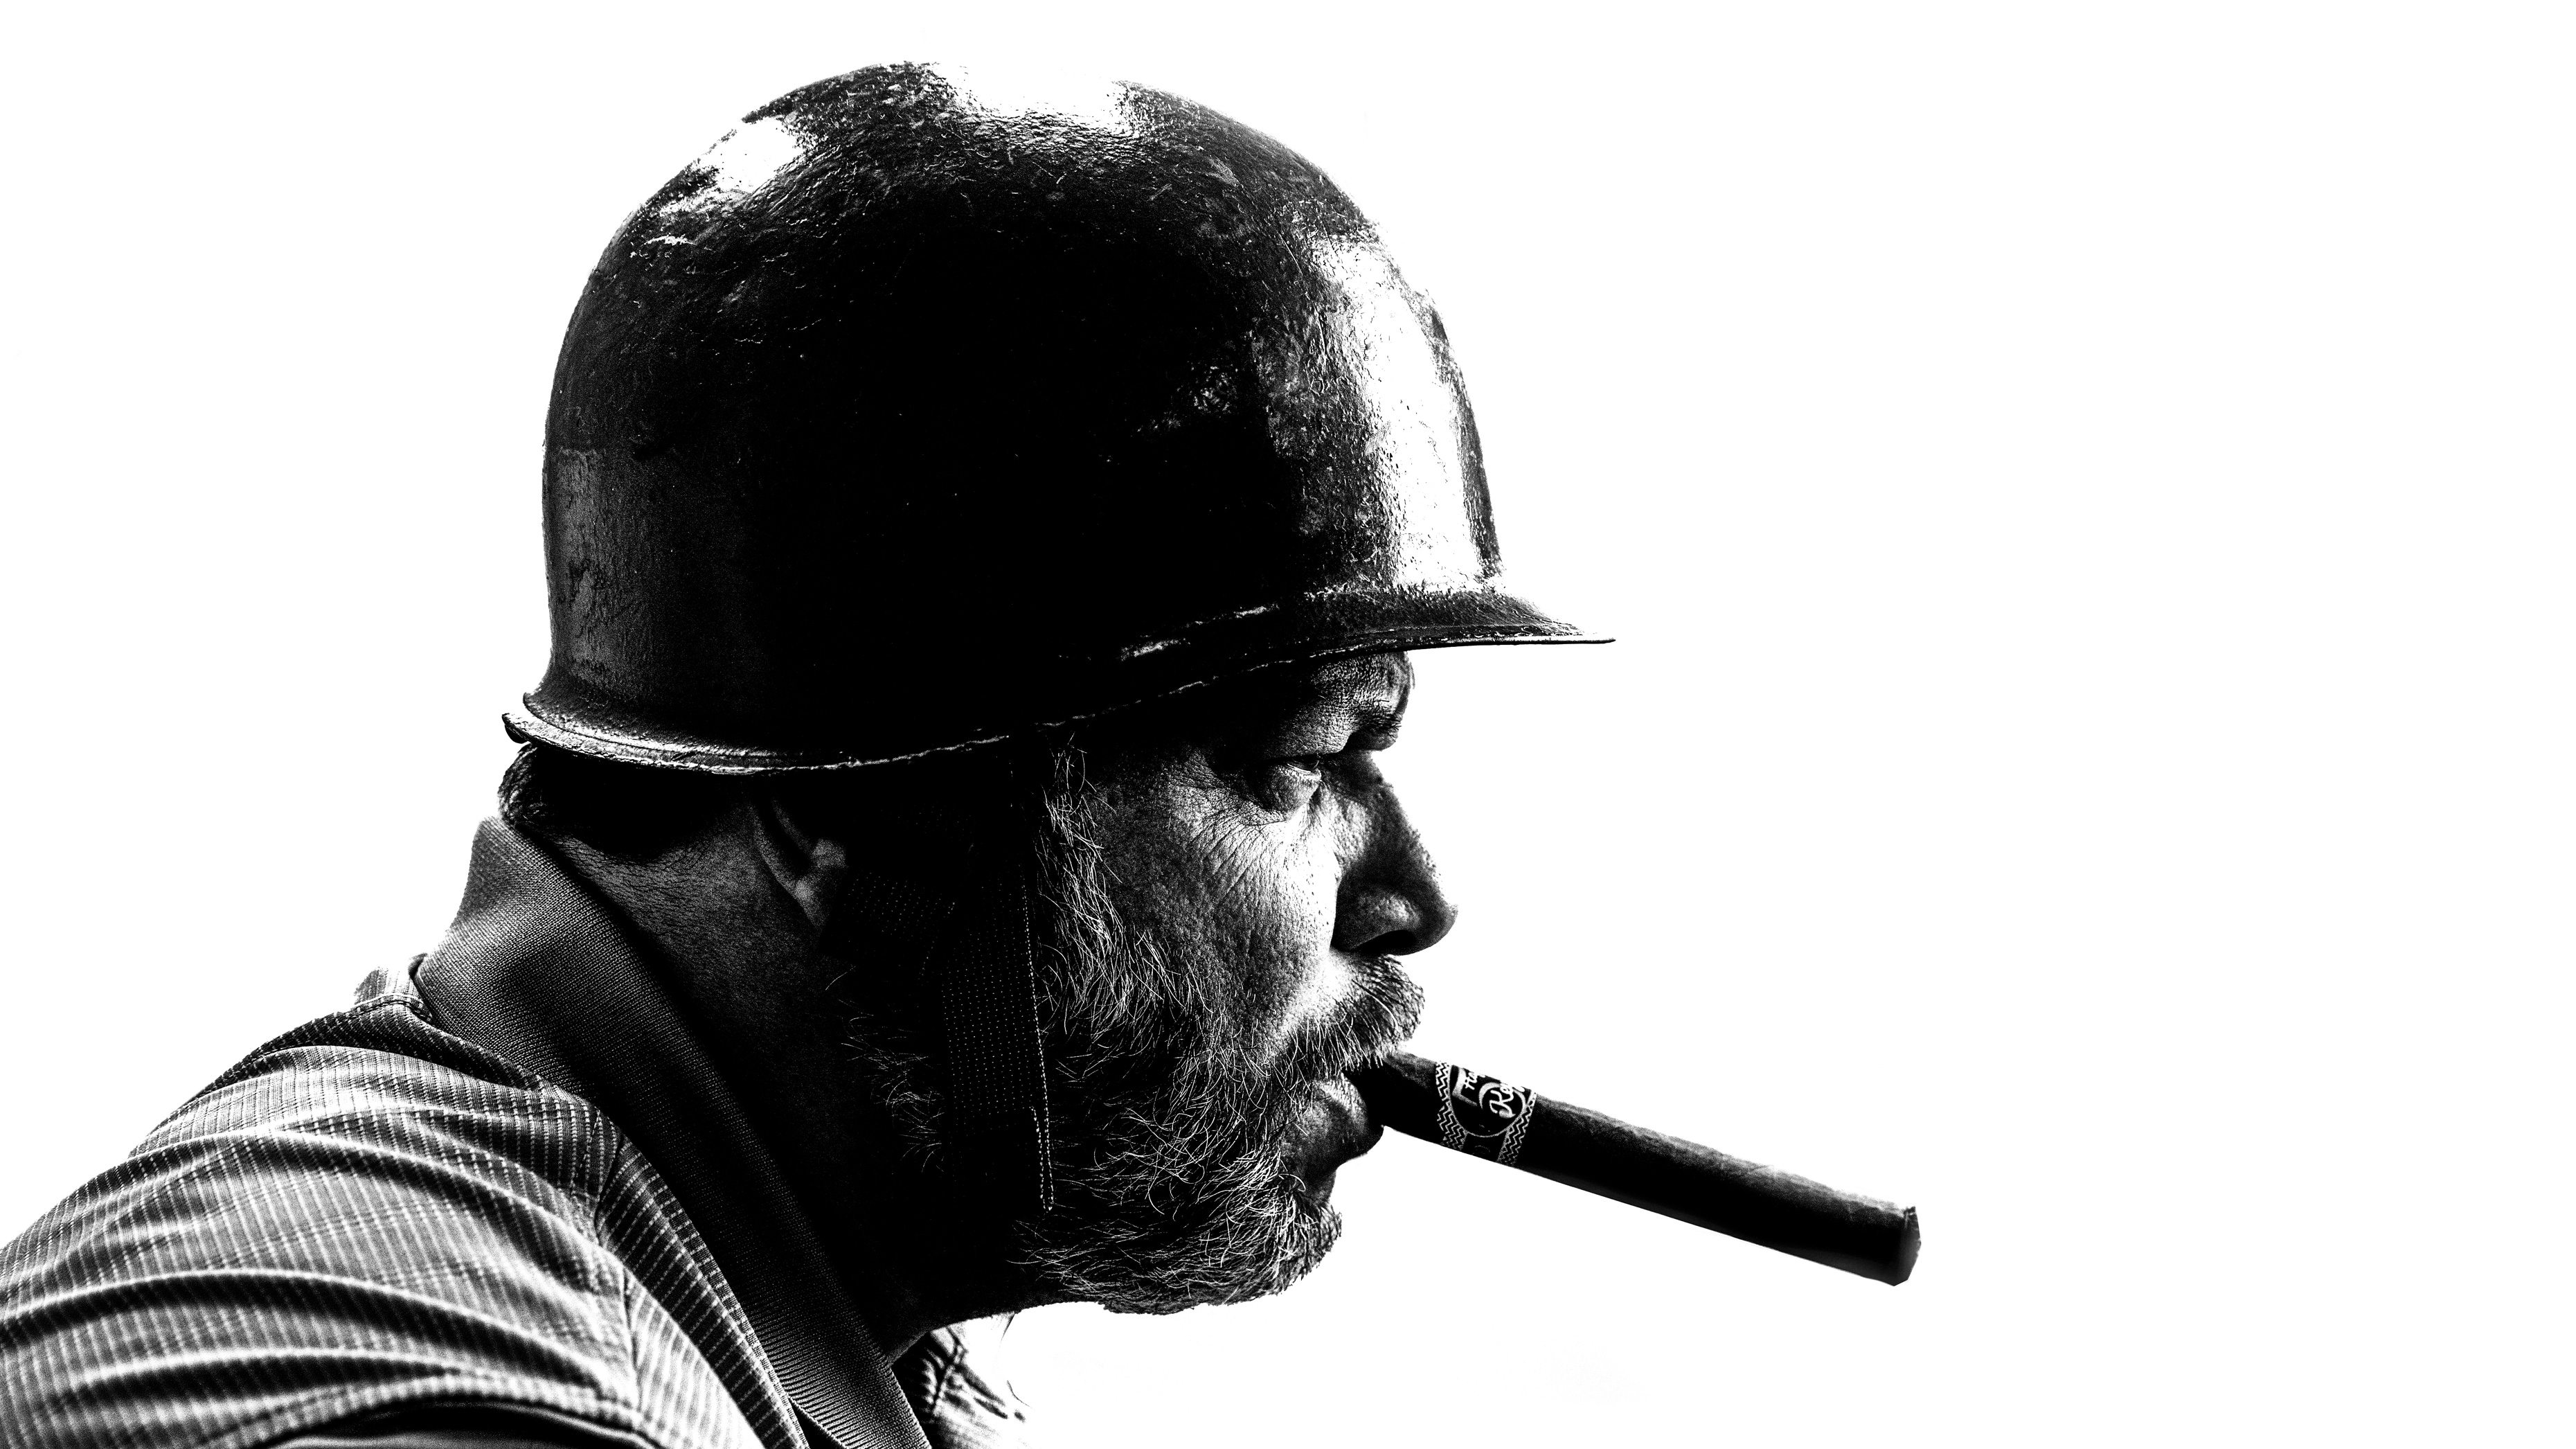 A black and white profile headshot of Frank Monteiro of Waterbury CT wearing an army helmet, cigar in mouth